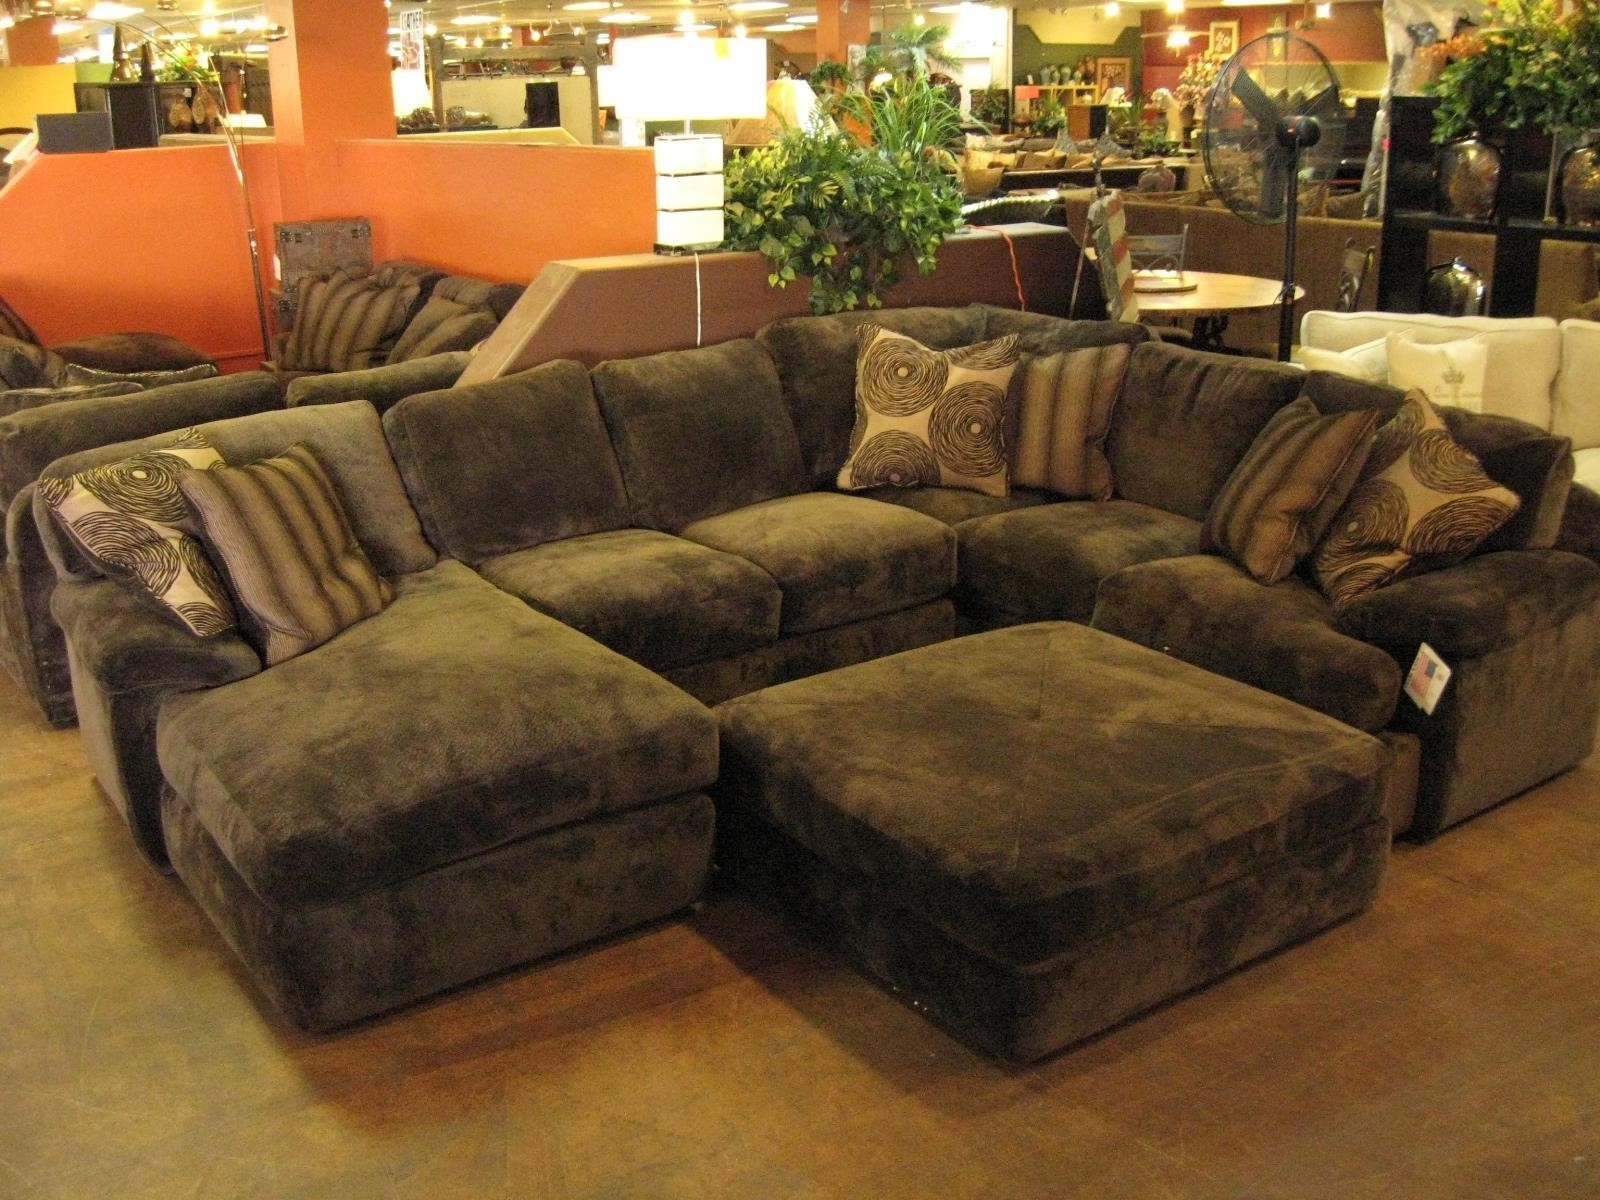 Sofa ~ Comfy Deep Couches And Sofas In Favorite Sofa Sectionals With Chaise (View 11 of 15)